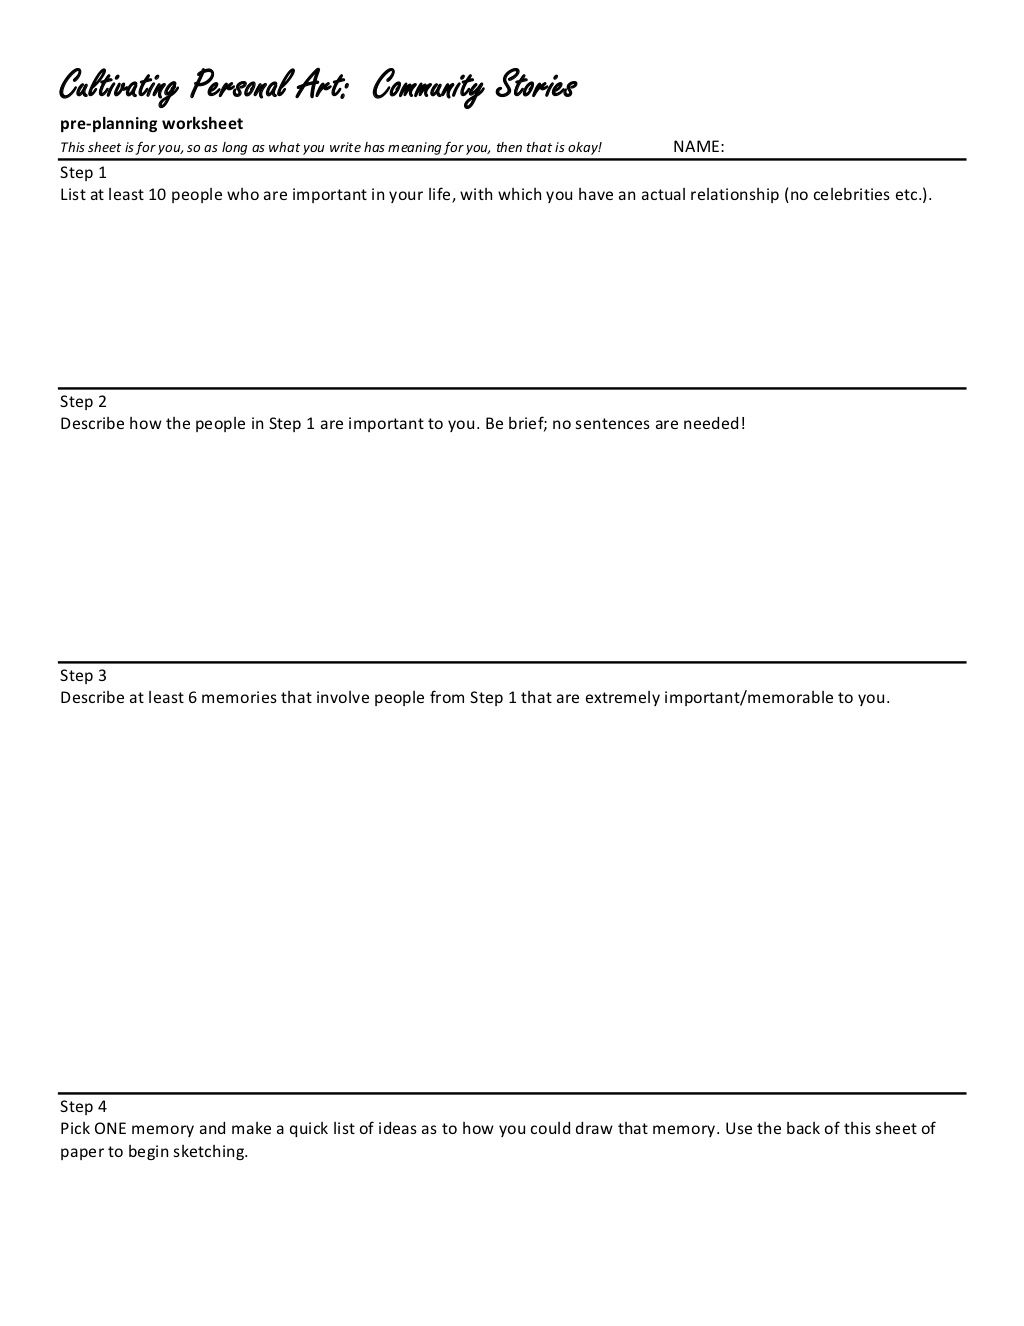 Creating Community Stories A Preplanning Worksheet For